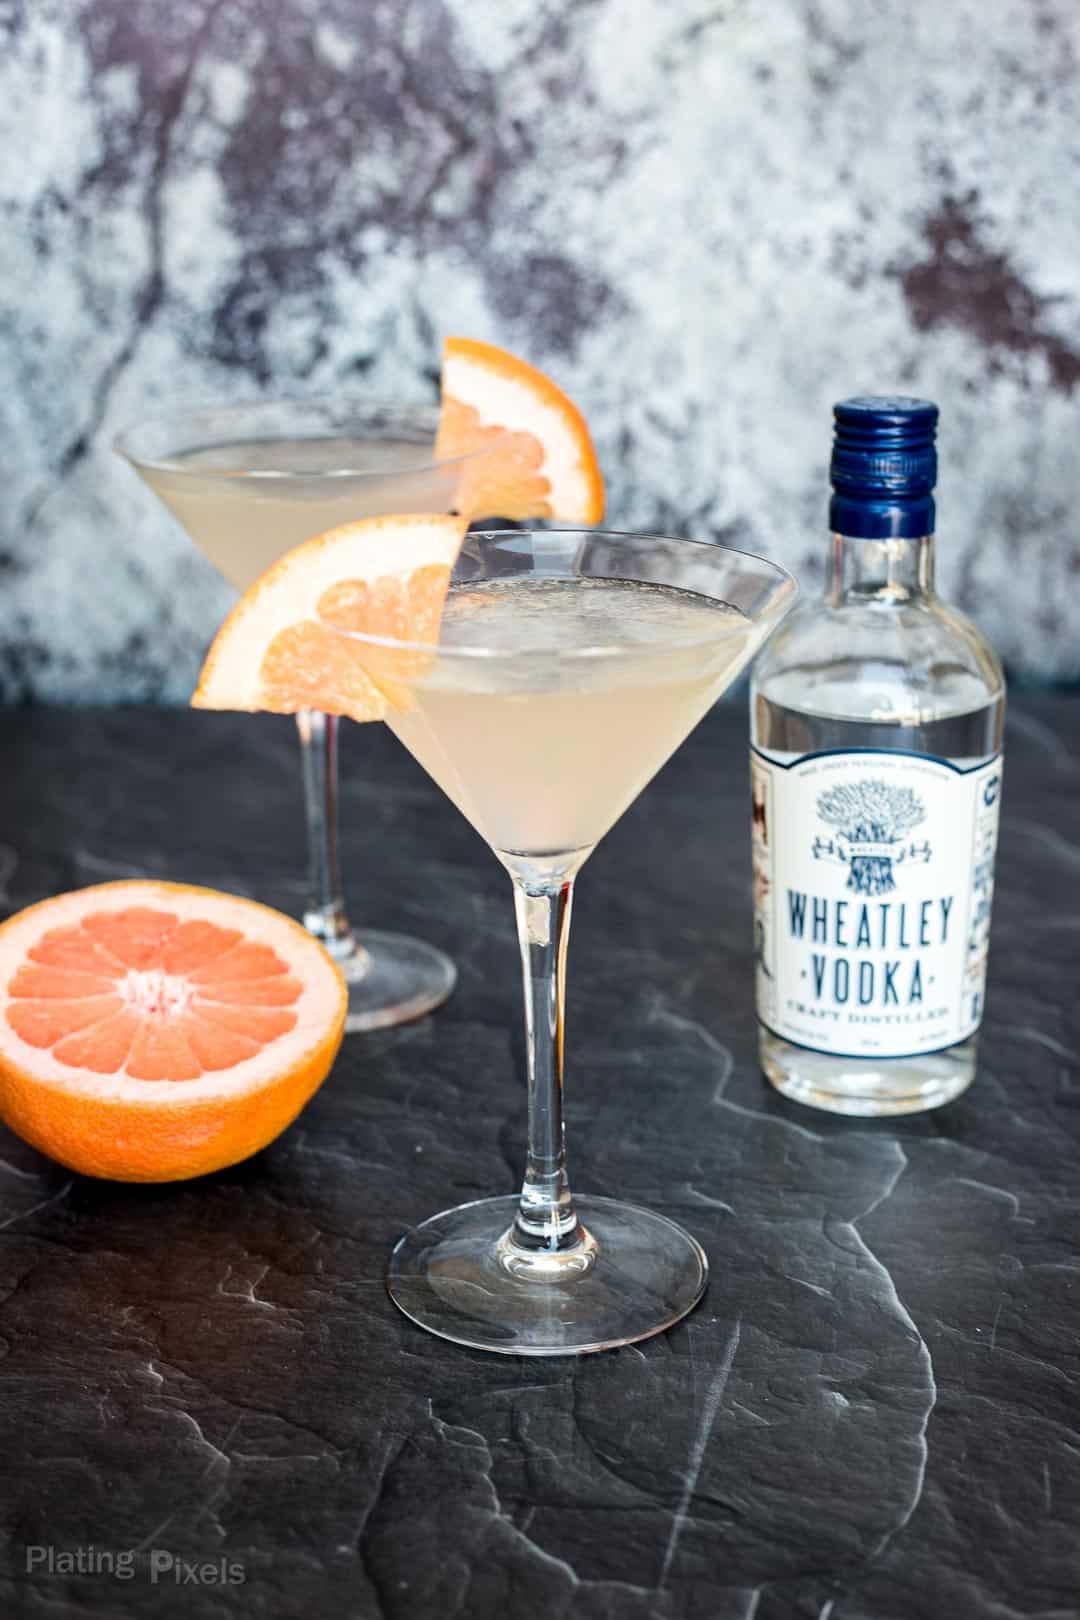 Prepared Grapefruit Martinis next to a bottle of Wheatley Vodka